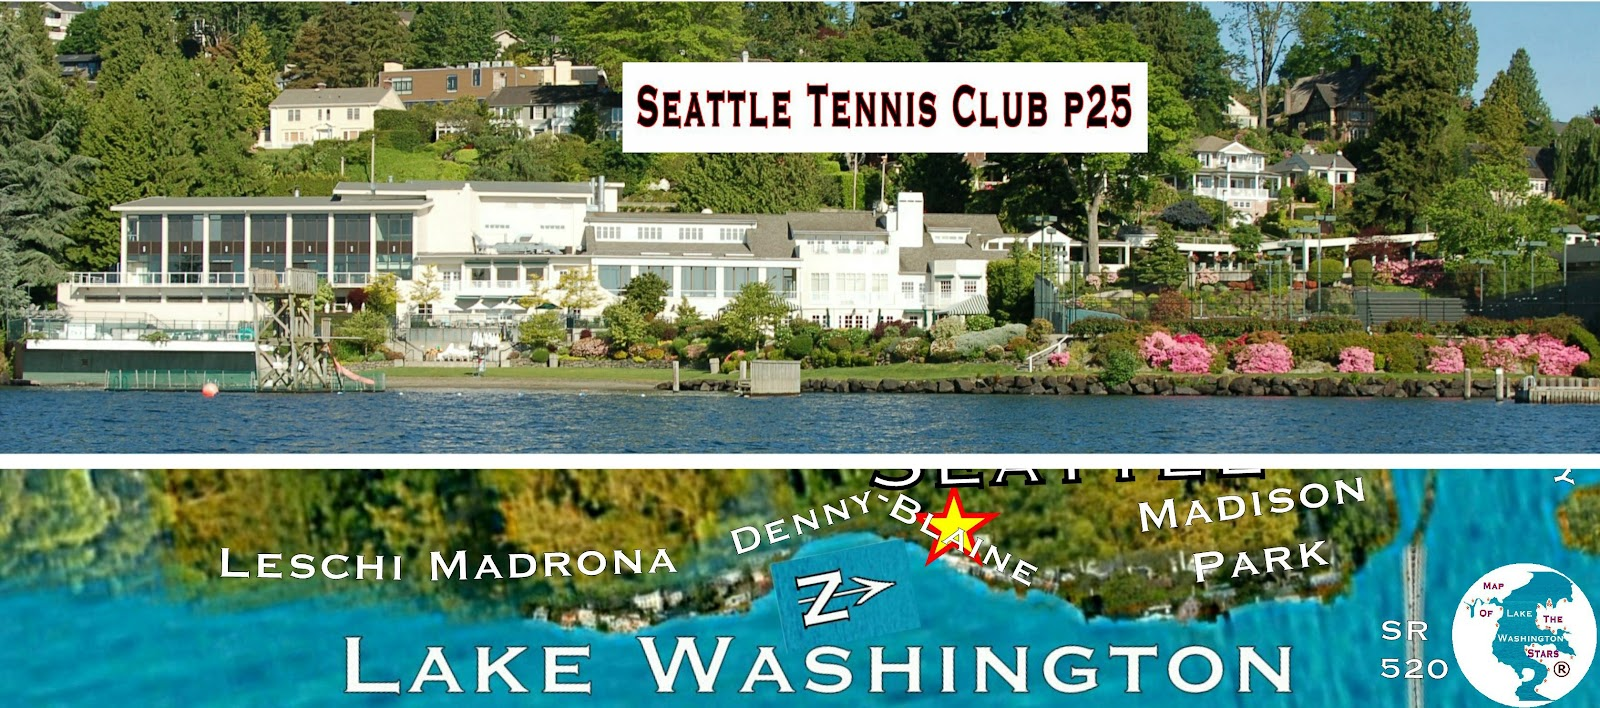 The Seattle Tennis Club Is Just South Of Madison Park In Denny Blaine Was Founded A Few Blocks North Its Present Site As